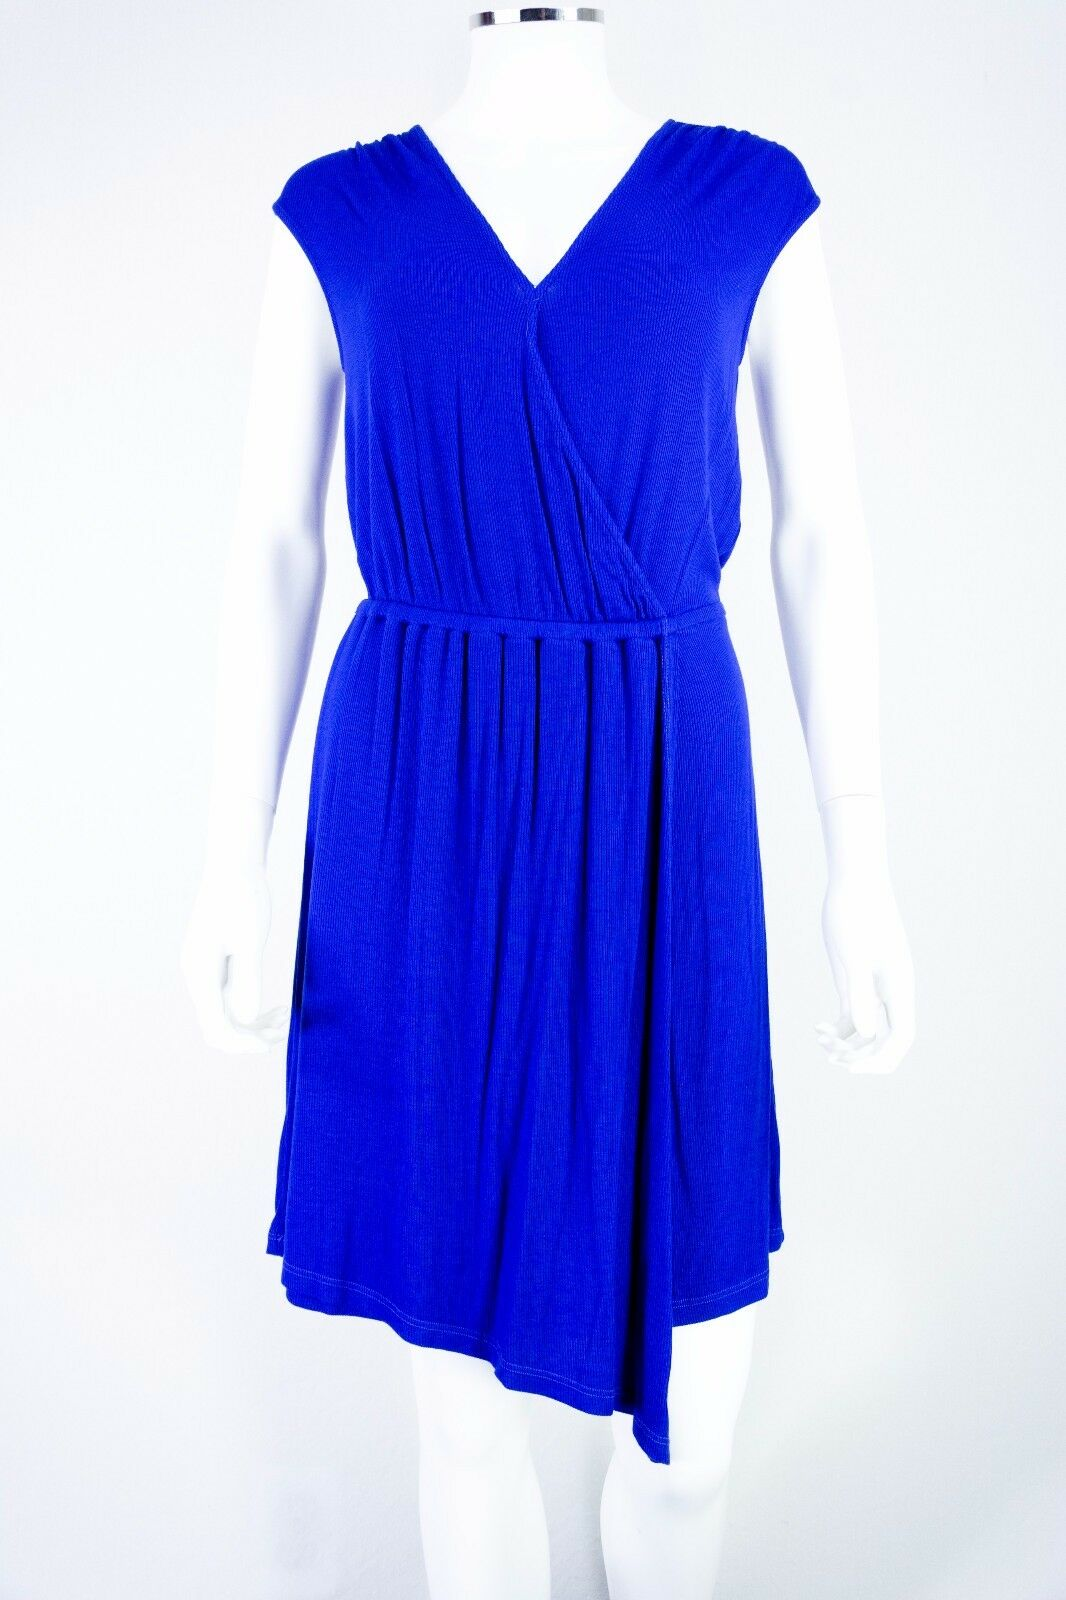 Women's Splendid size Small bluee Asymmetrical Wrap Ribbed Dress Made in USA NEW